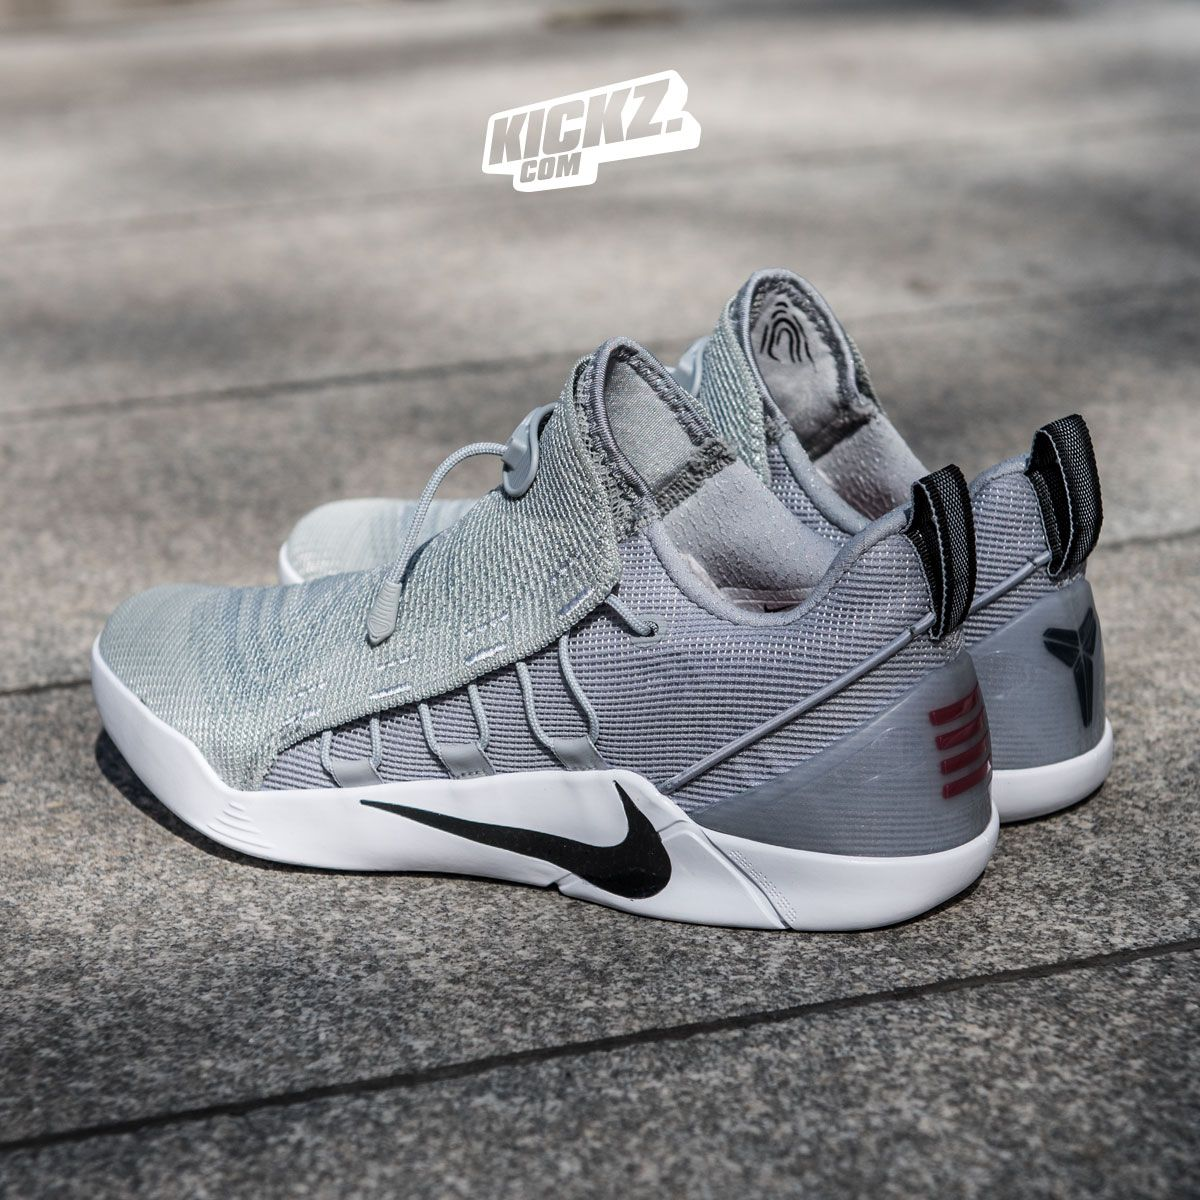 half off 1b514 29cf4 The Nike Kobe A.D. NXT is straight next level.   kickz.com